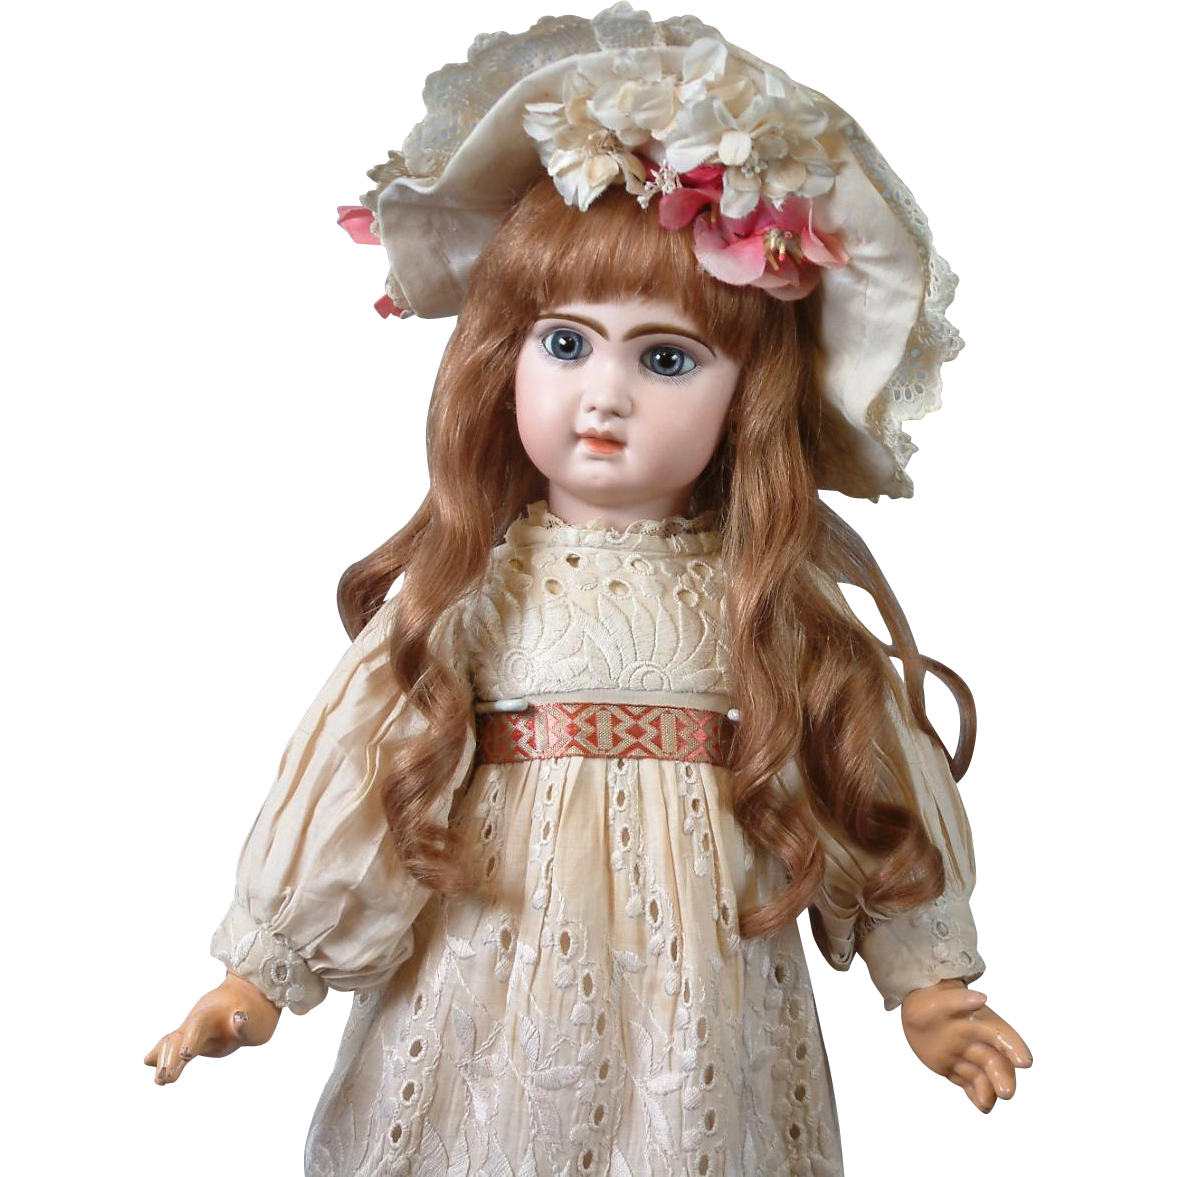 "Fabulous 24"" Closed Mouth Tete Jumeau Bebe With Stunning Blue Eyes!"